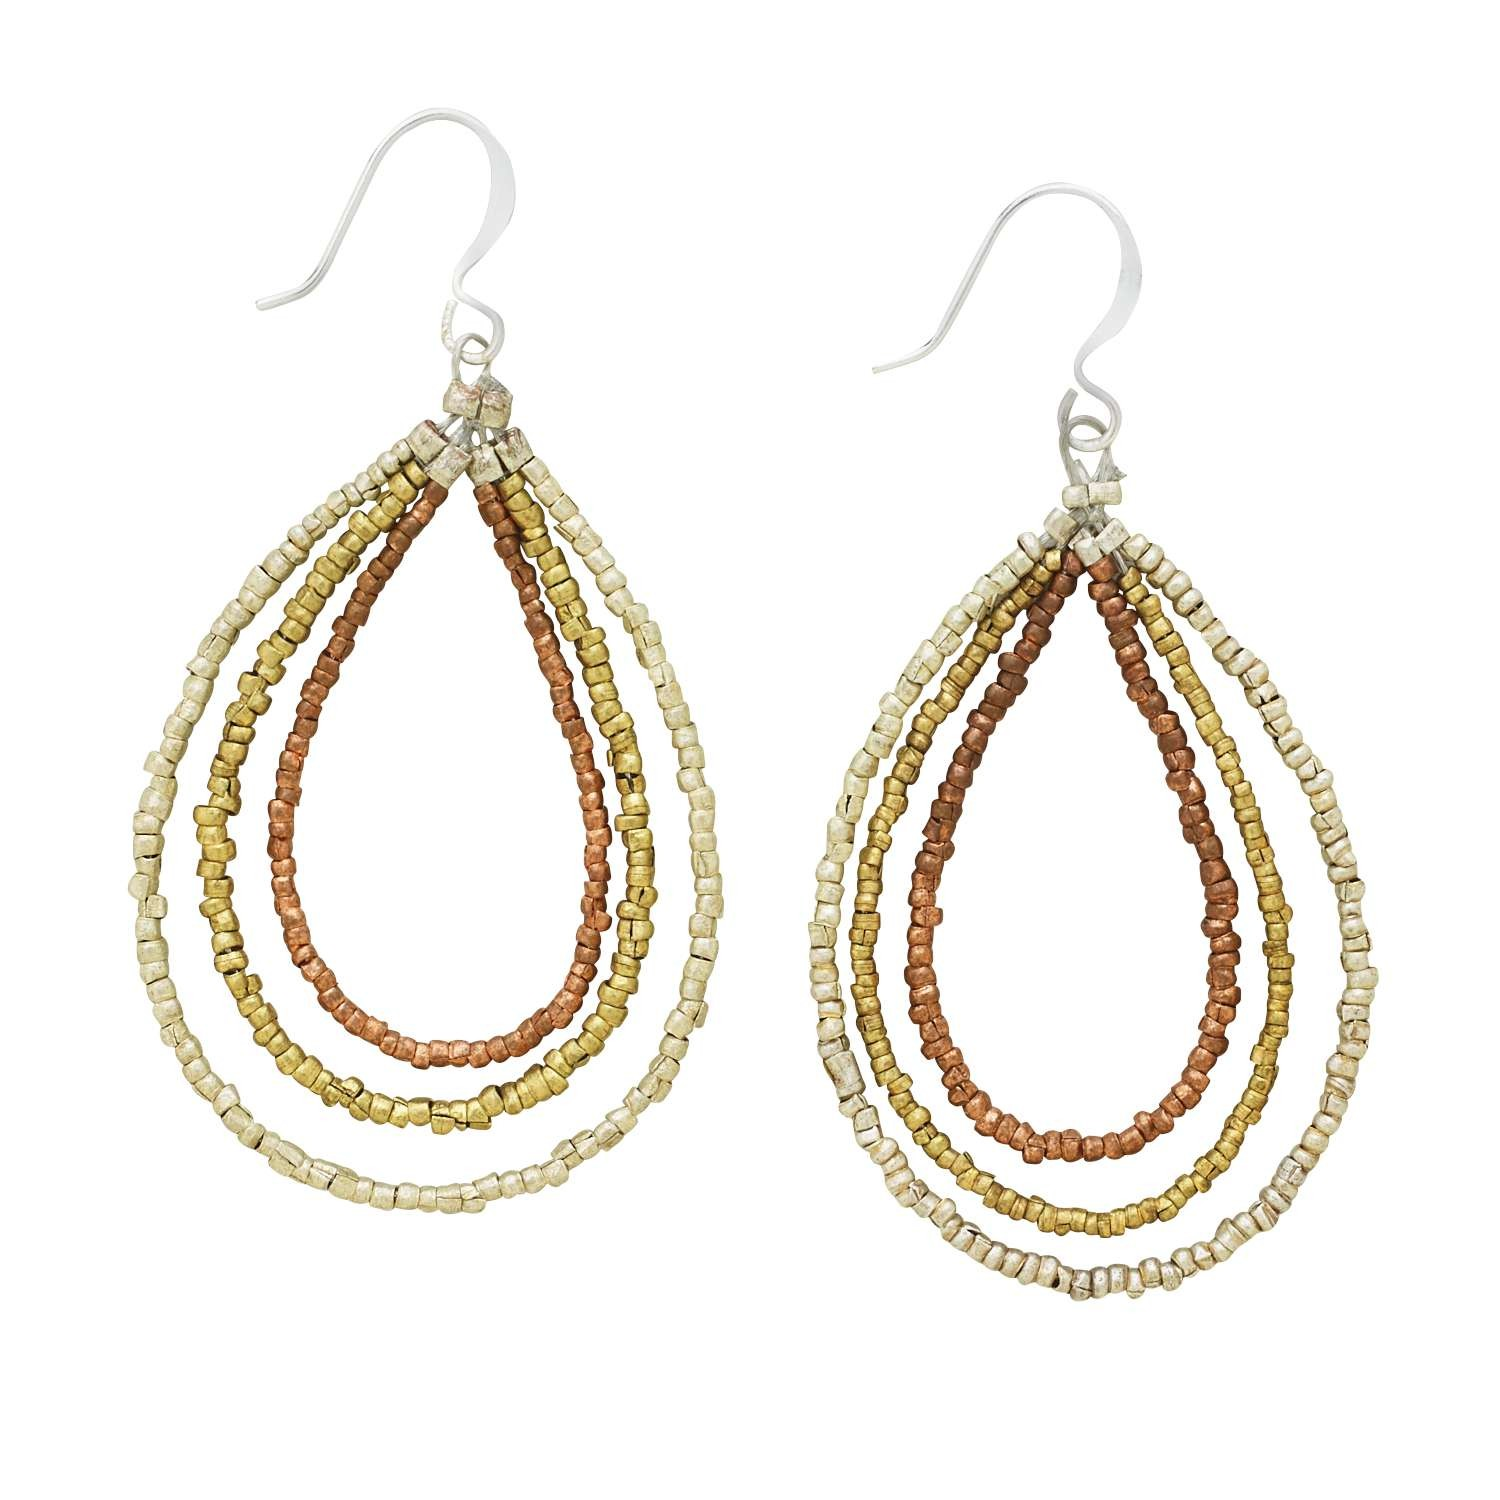 hoops of hope earrings